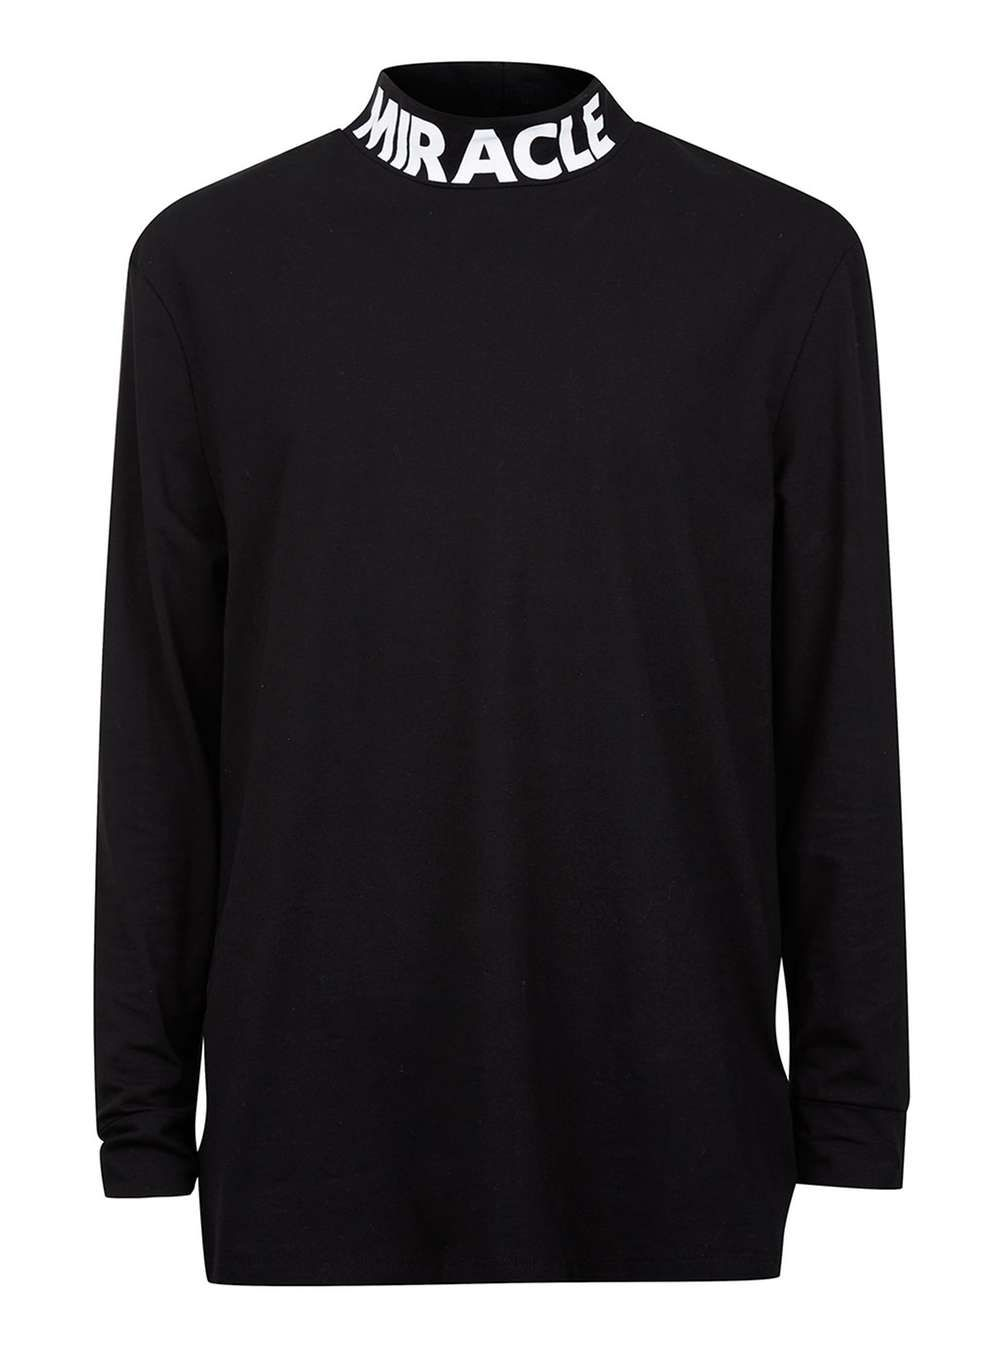 b9bddccea6 AAA Black Miracle Print Funnel Neck T-Shirt - Topman AAA - Clothing - TOPMAN